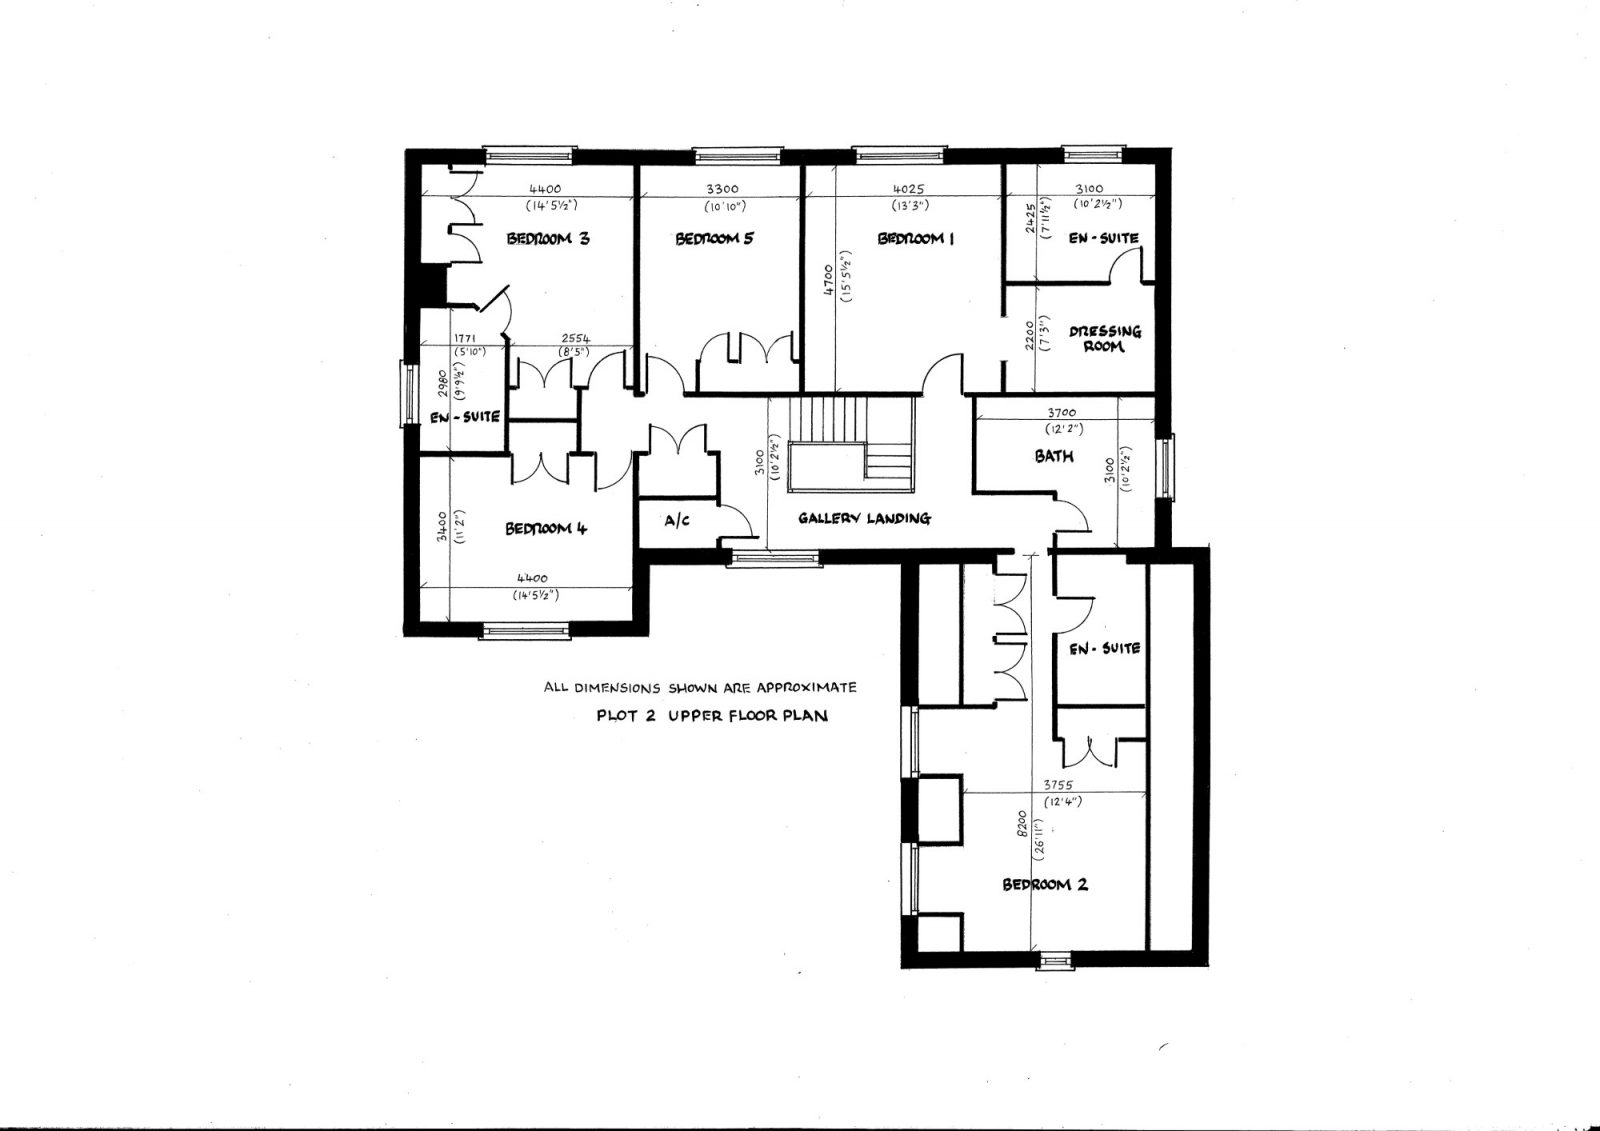 plot 2 upper floor plan 1